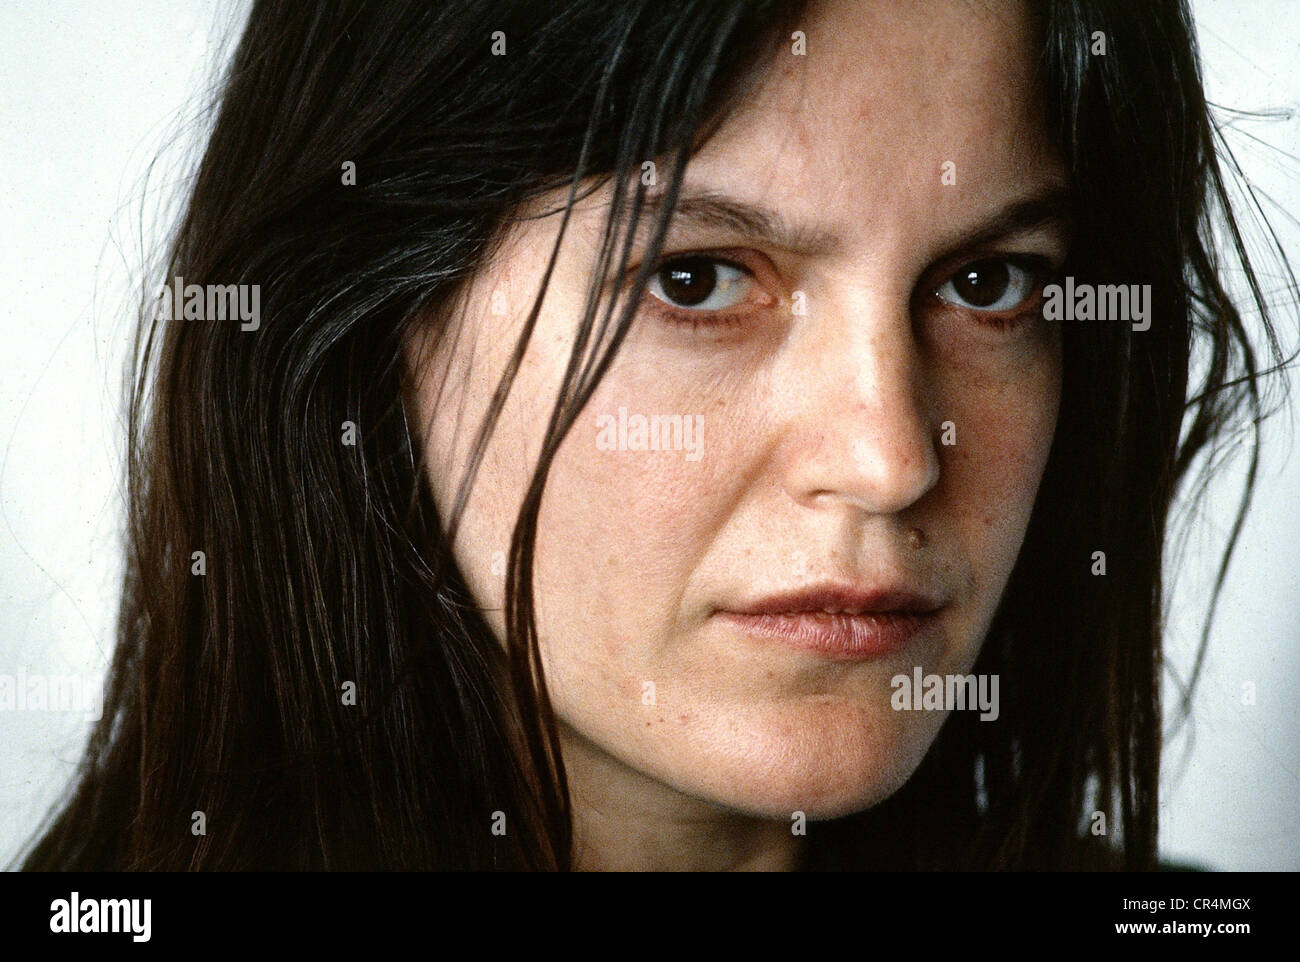 Winkler, Angela, * 22.1.1944, German actress, portrait, Munich, 1983, Additional-Rights-Clearances-NA - Stock Image